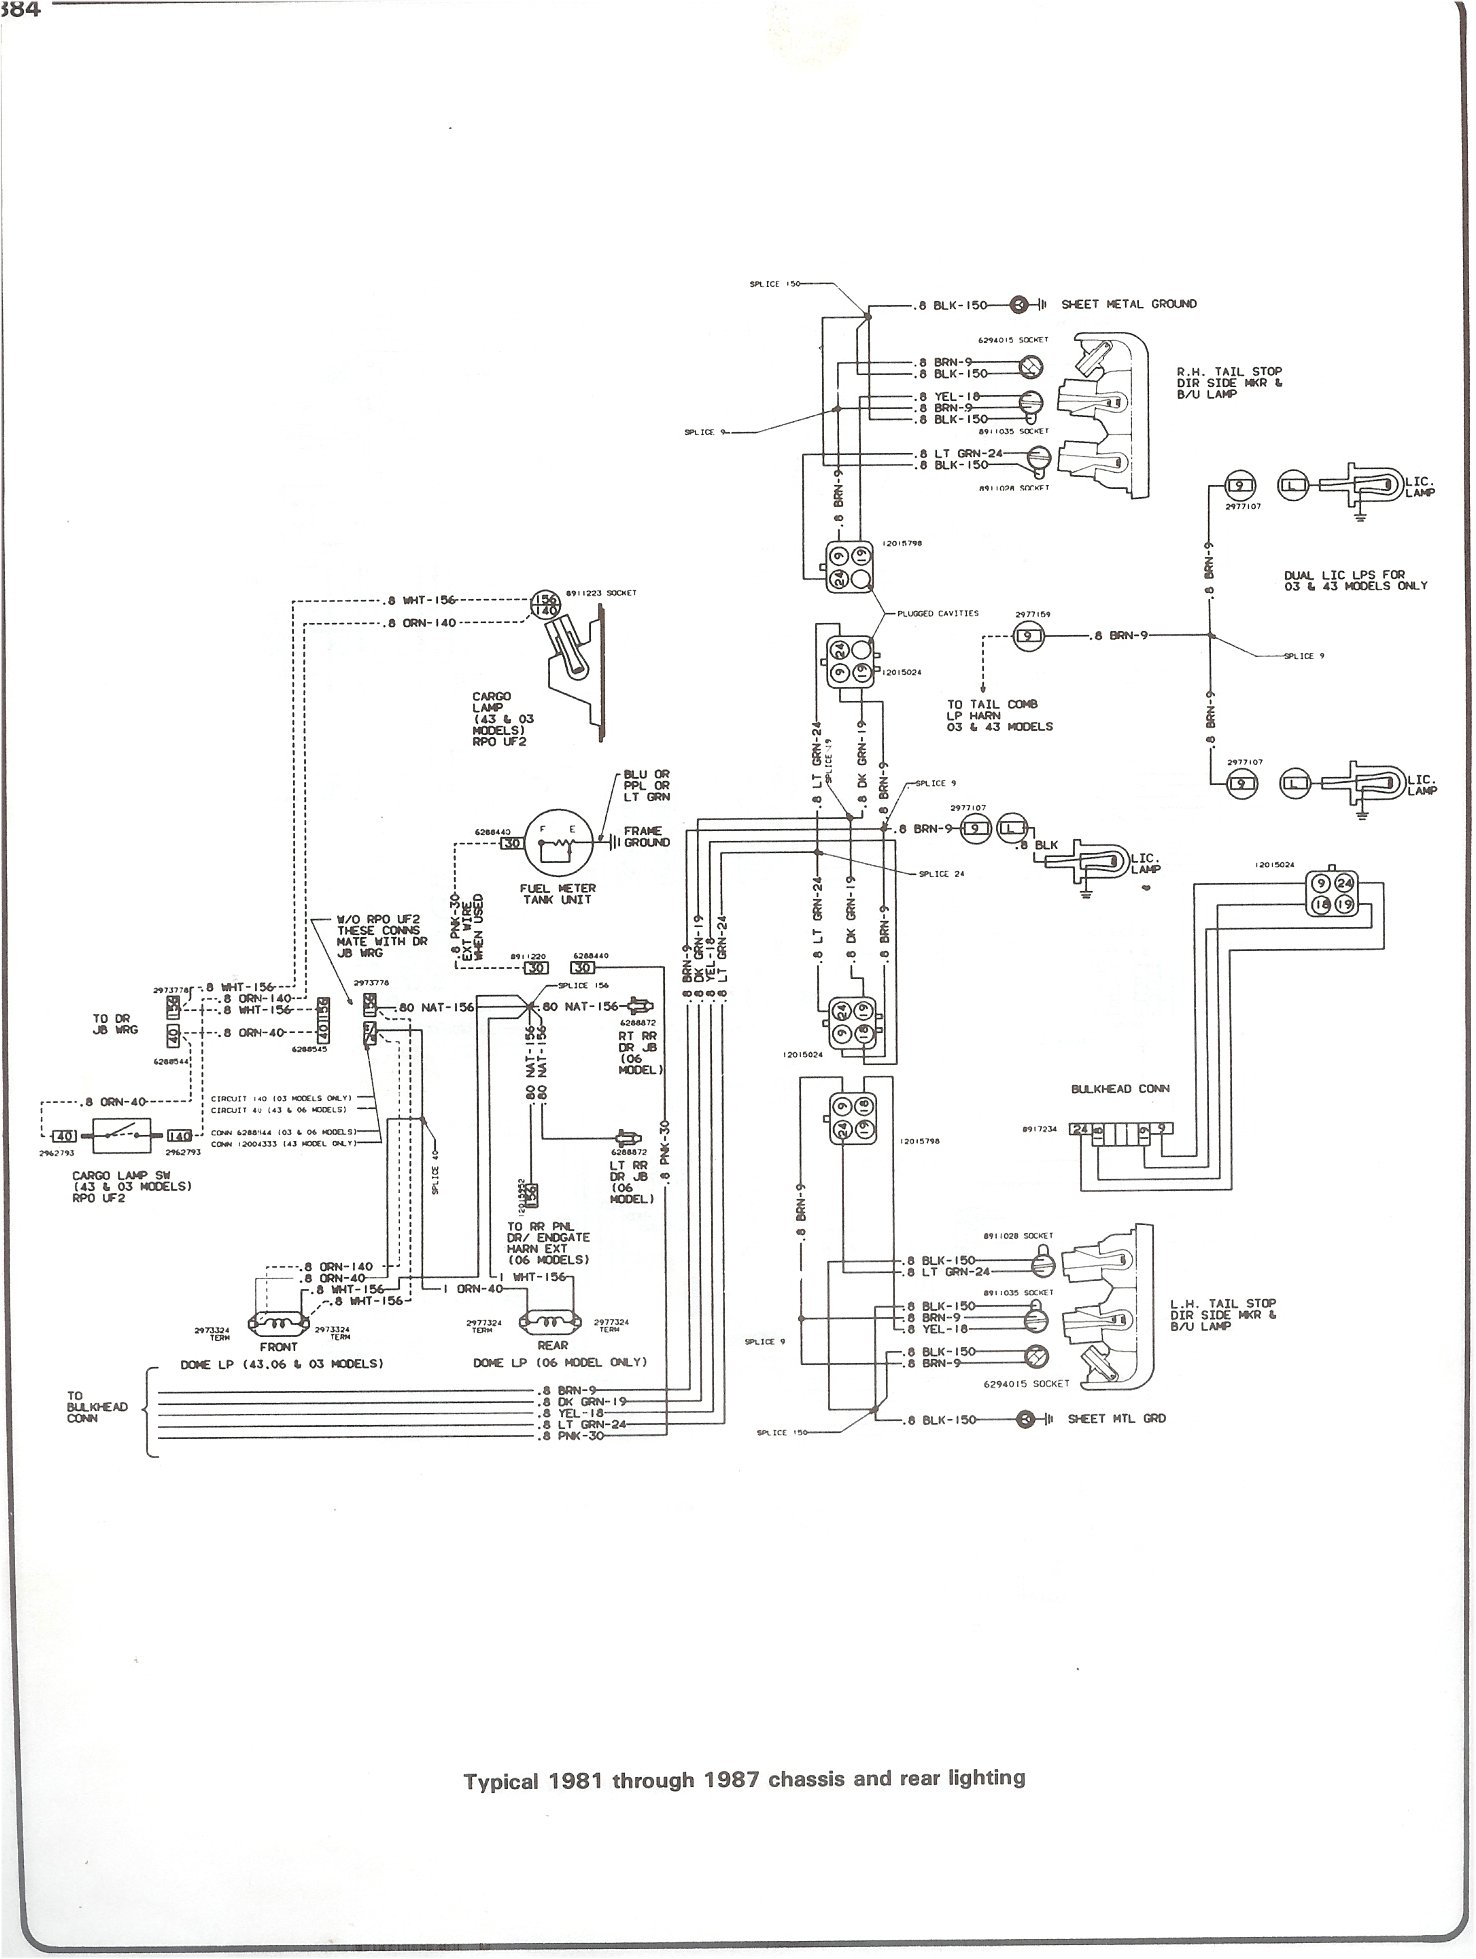 81 87_chass_rr_light brake light switch wiring diagram? blazer forum chevy blazer wiring diagram for 1970 chevy c10 at gsmx.co